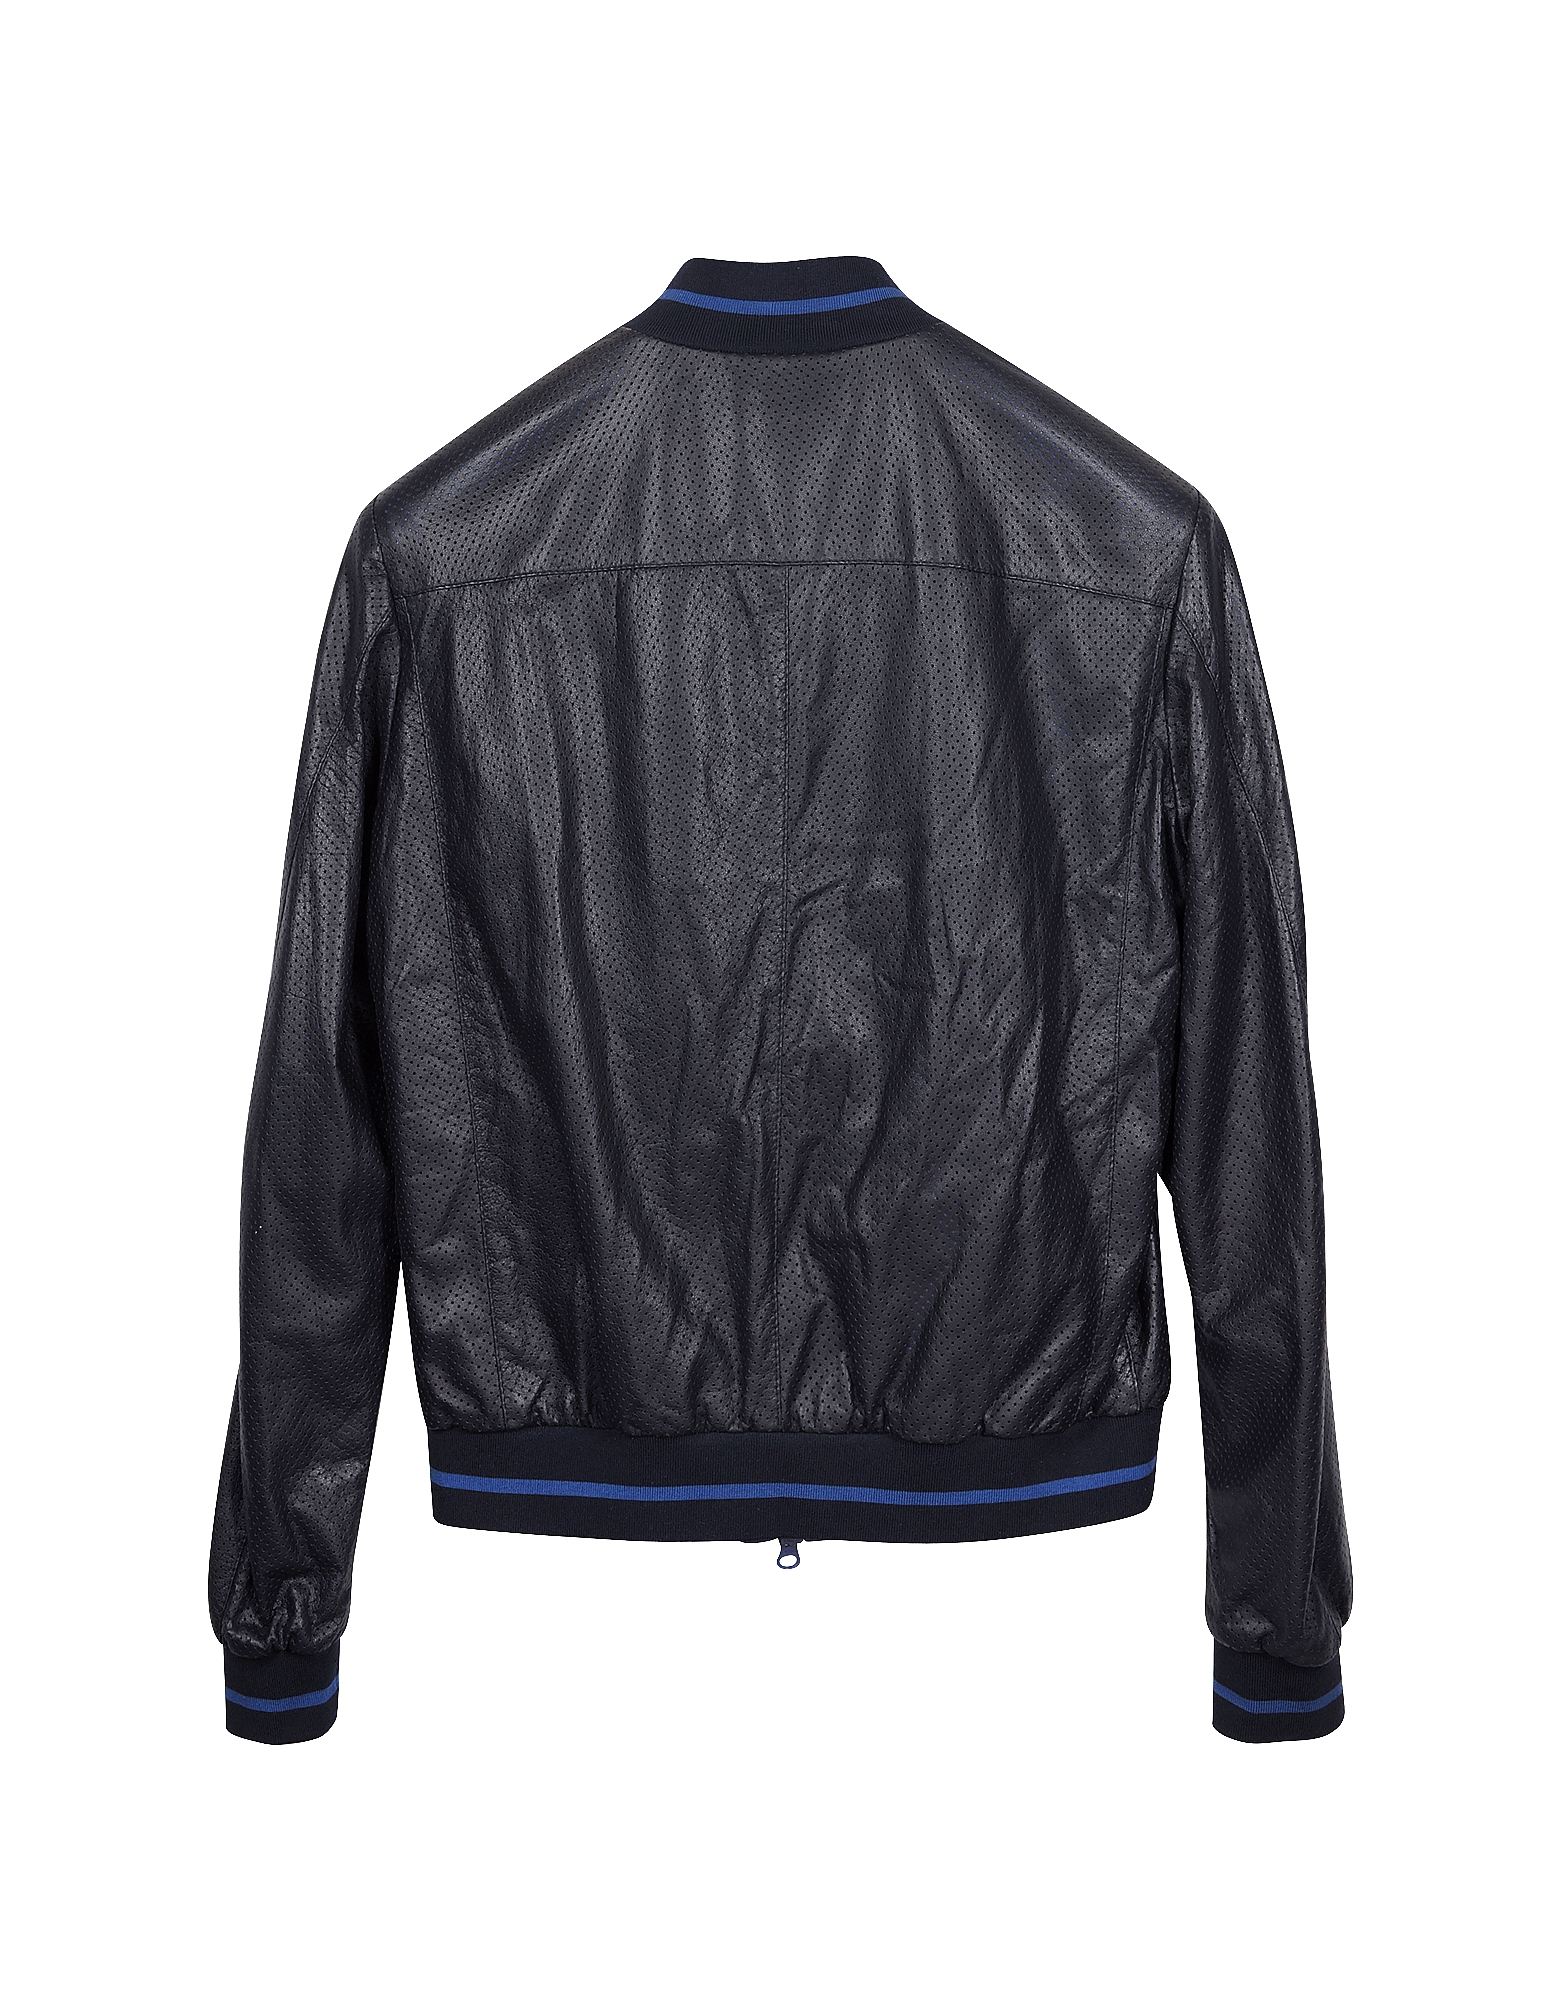 Navy Blue Perforated Leather Men's Jacket от Forzieri.com INT